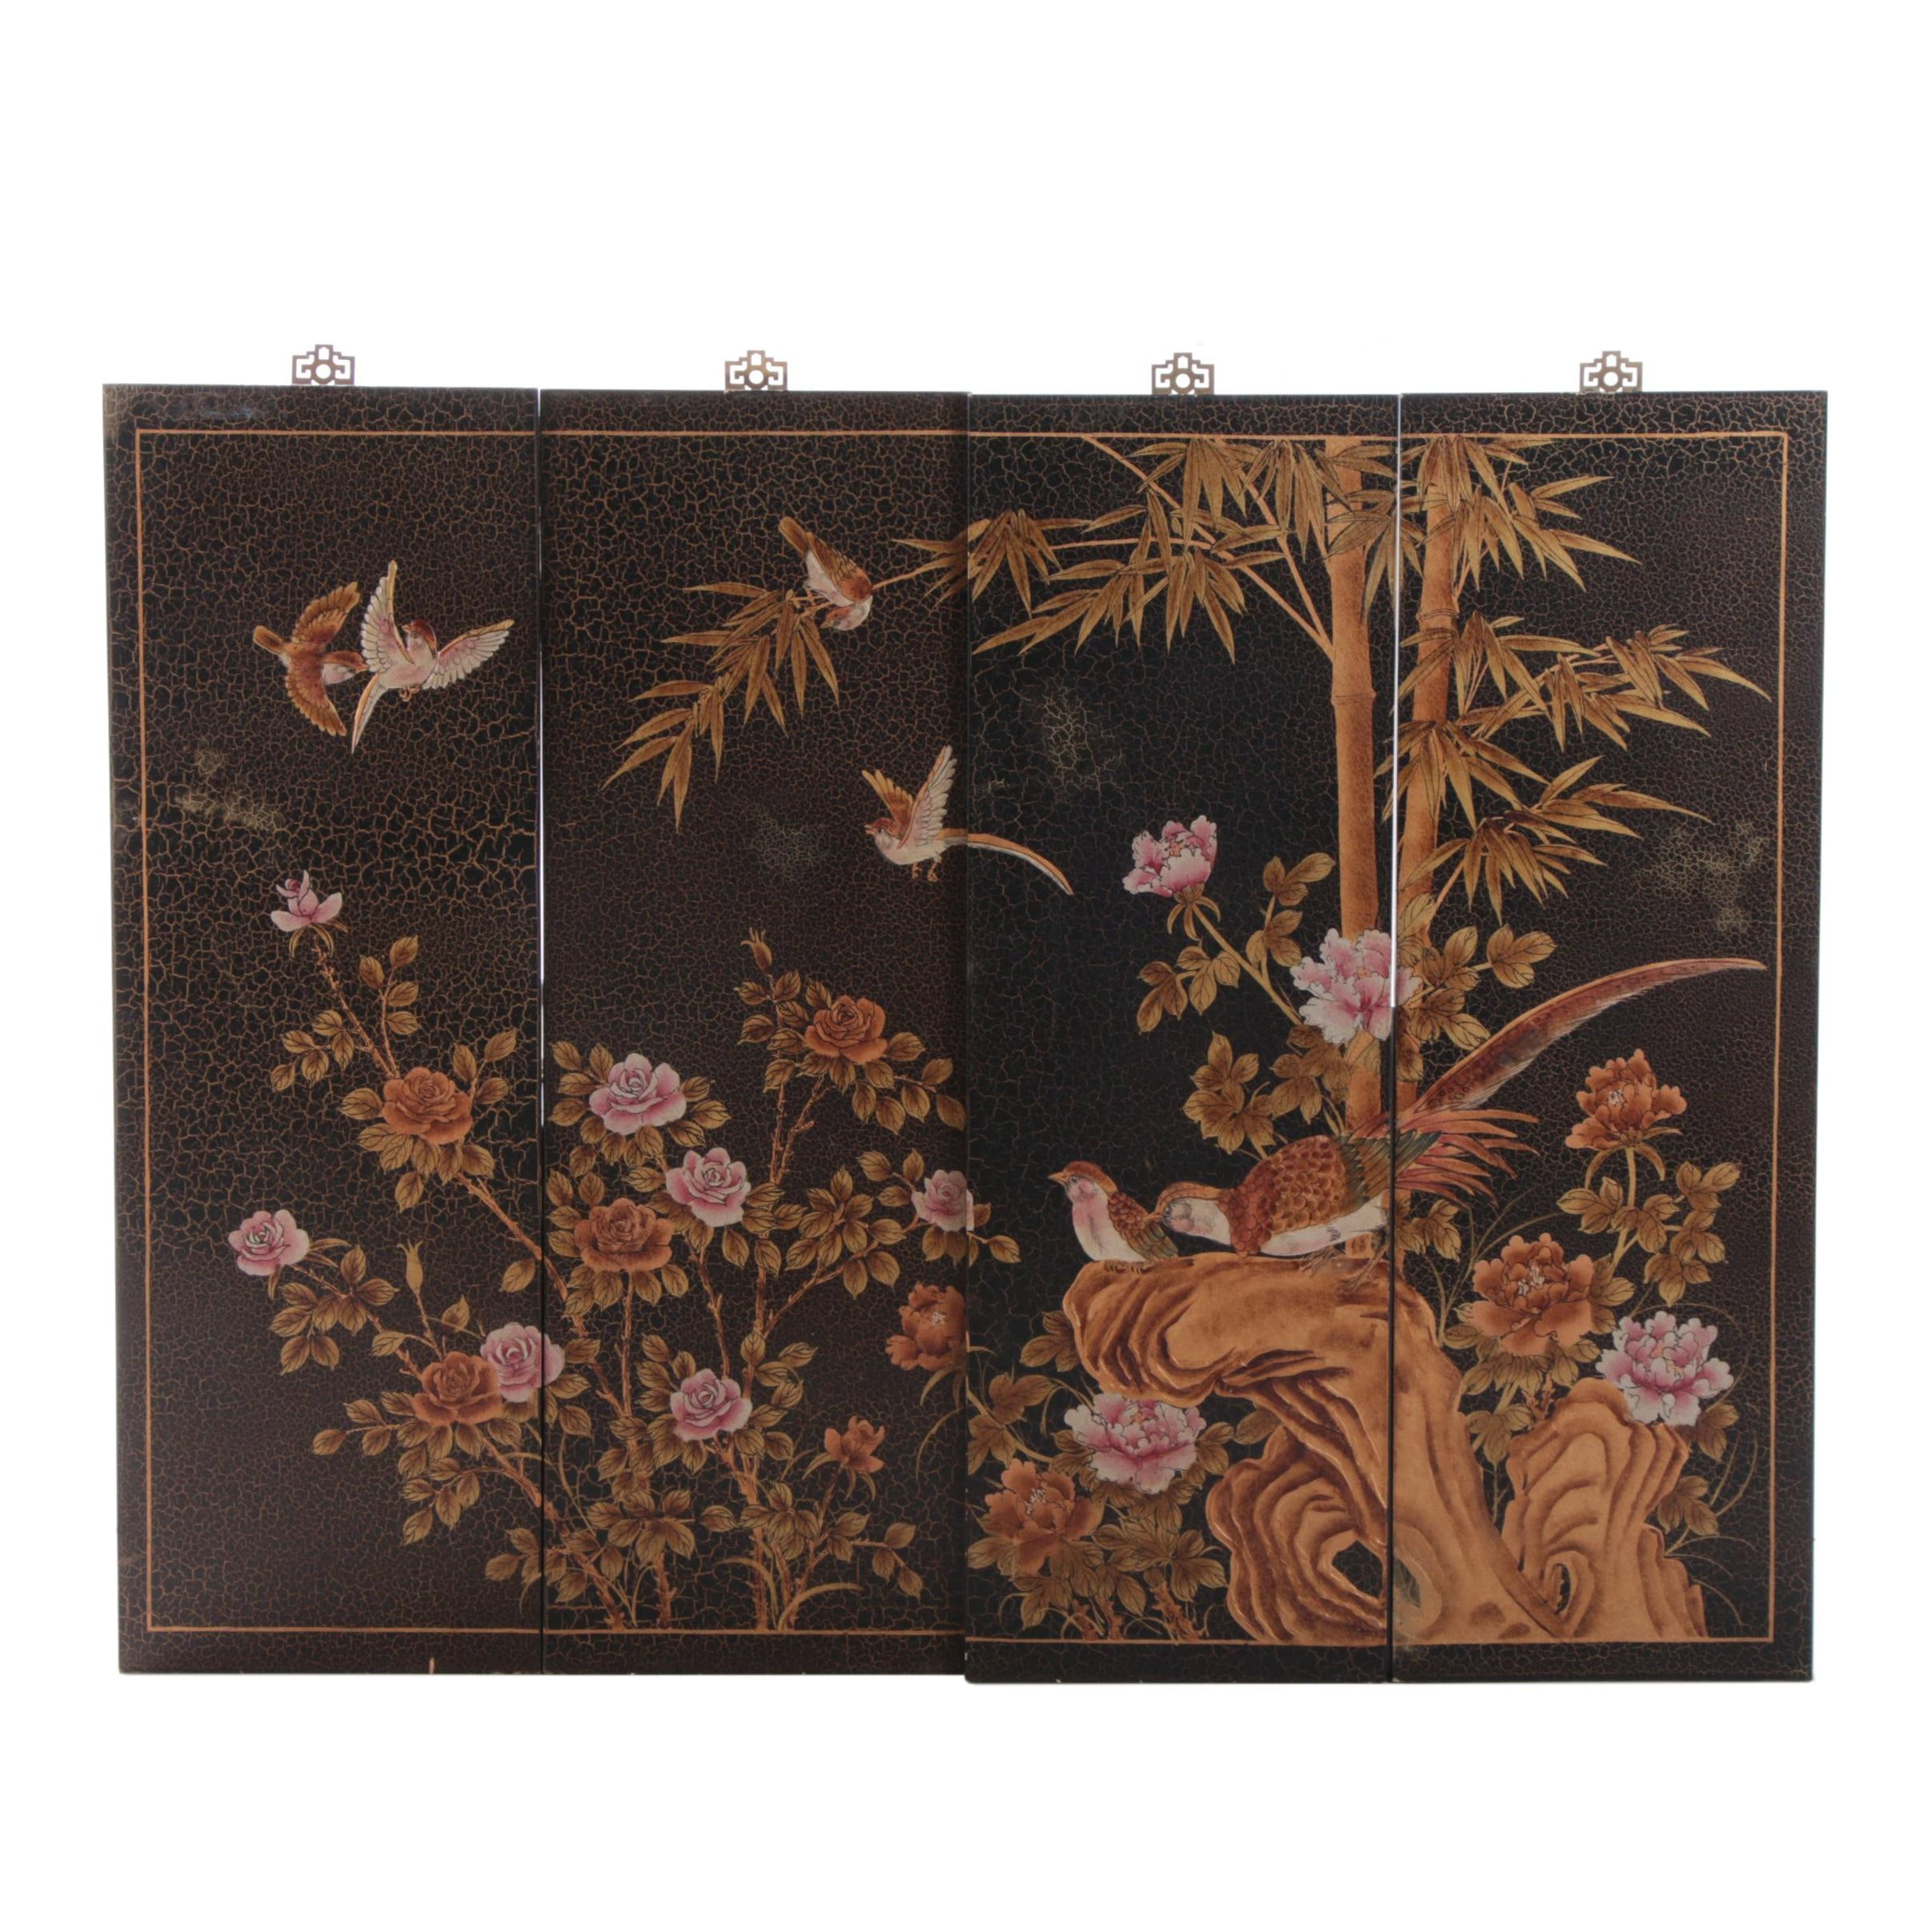 Chinoiserie Paneled Wooden Wall Mural of Birds and Flora